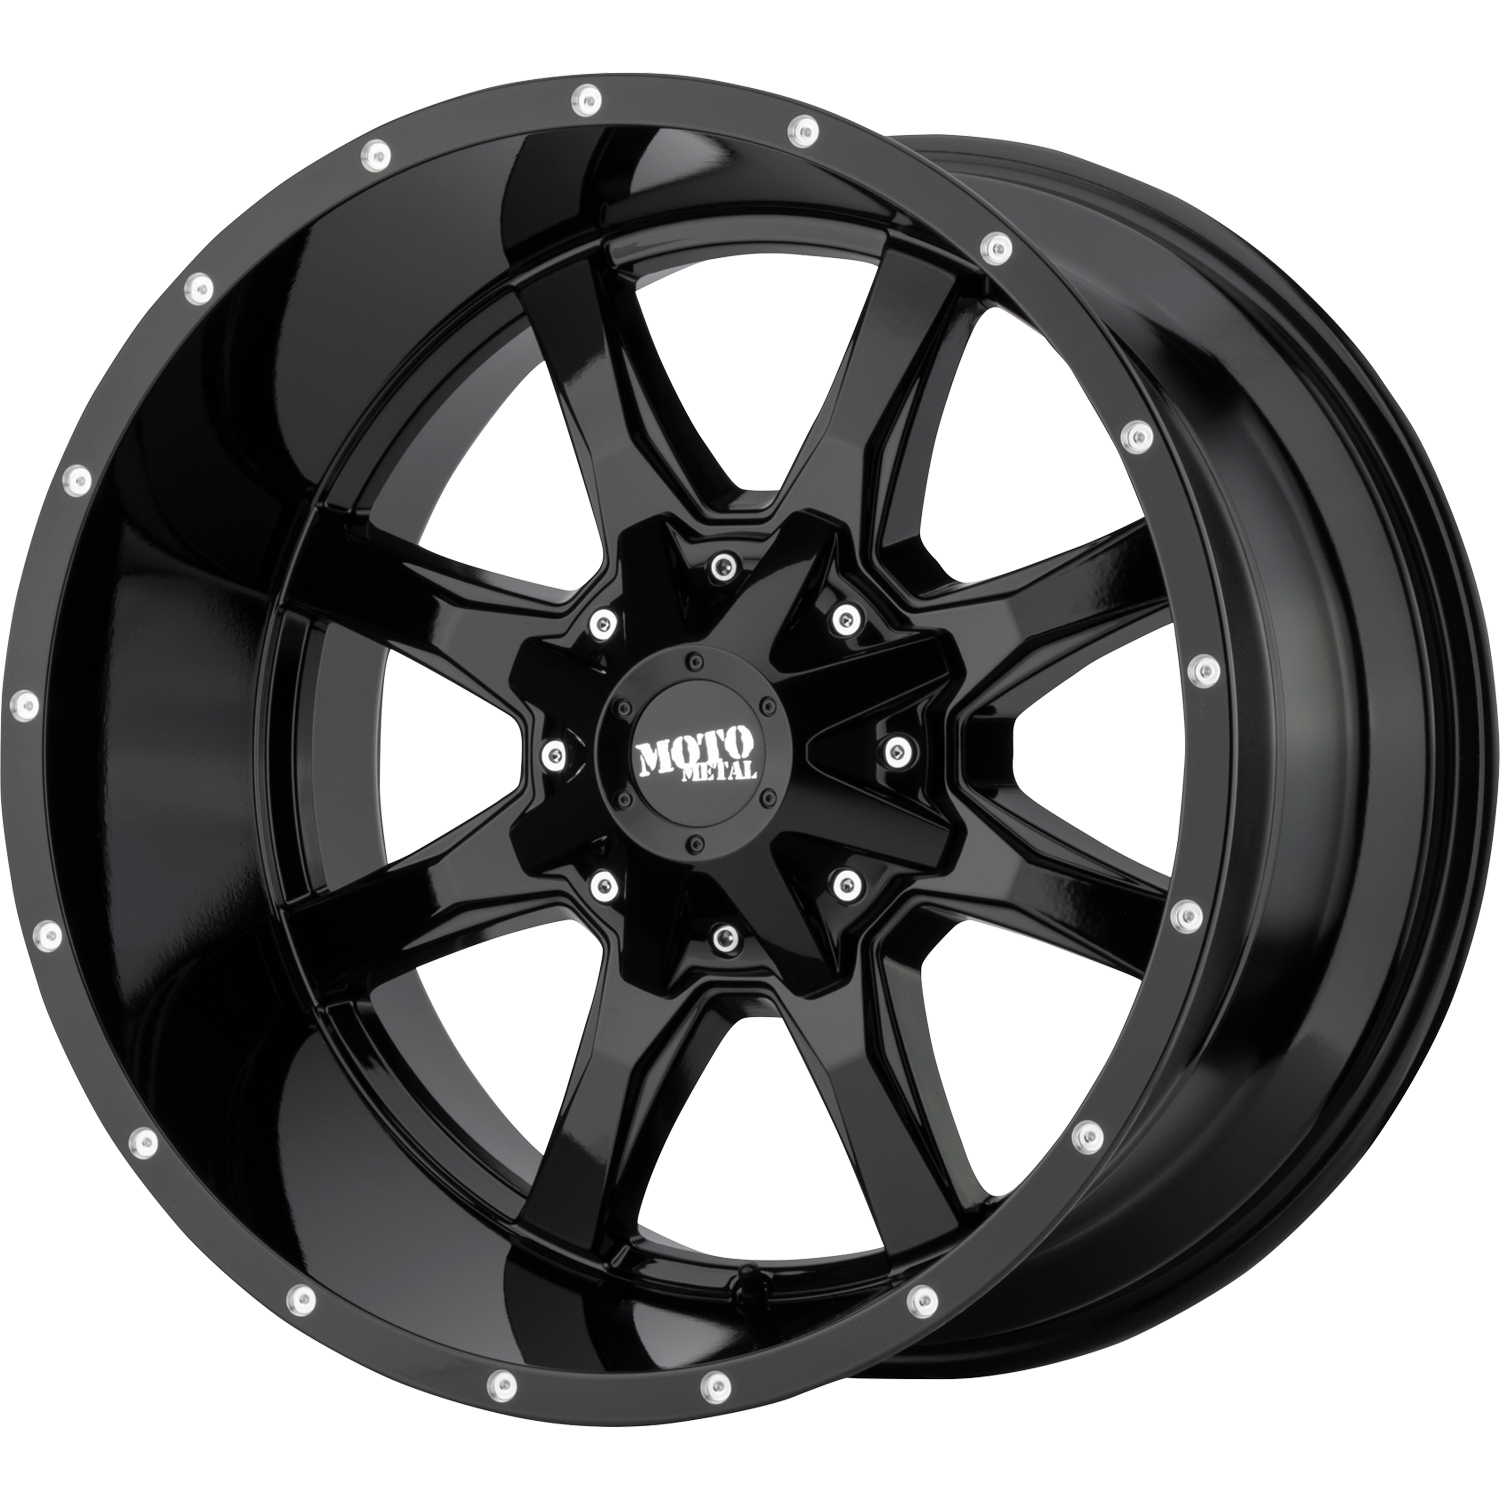 Moto Metal MO970 Gloss Black 18x9 18